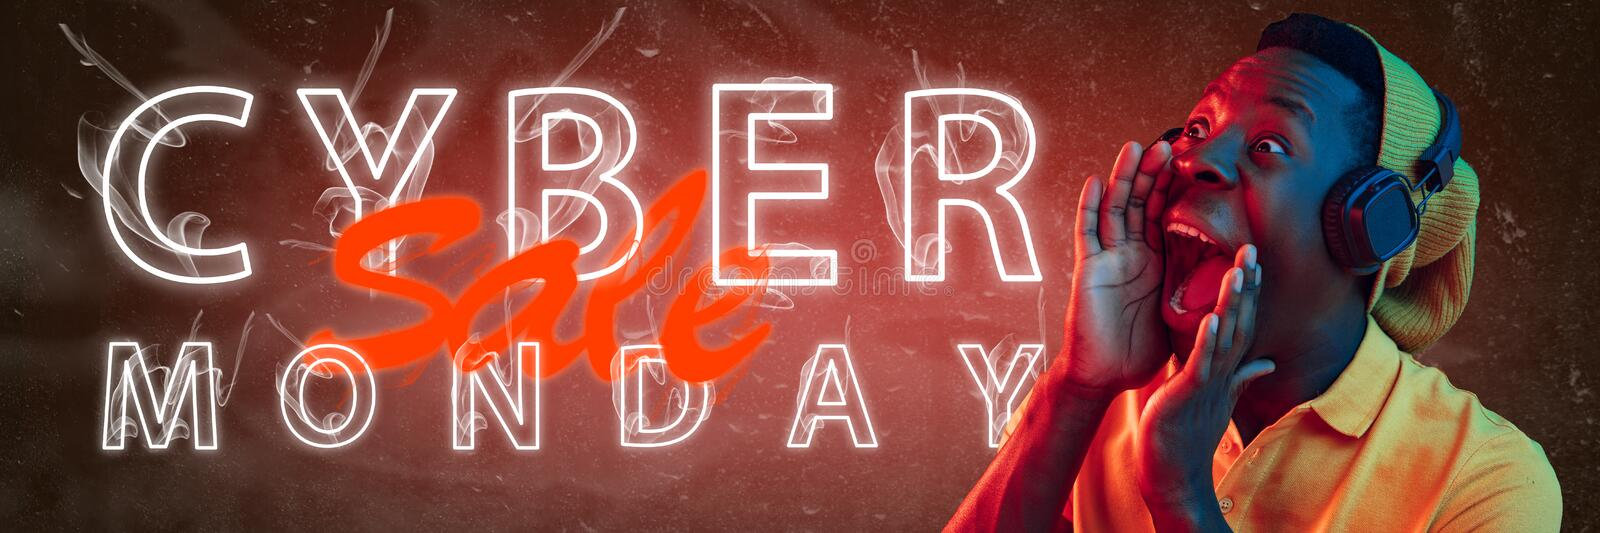 Cyber monday, sales. Modern design. Contemporary art collage. Cyber monday, sales, purchases concept. Neon lighted letters on gradient background. Astonished stock photos